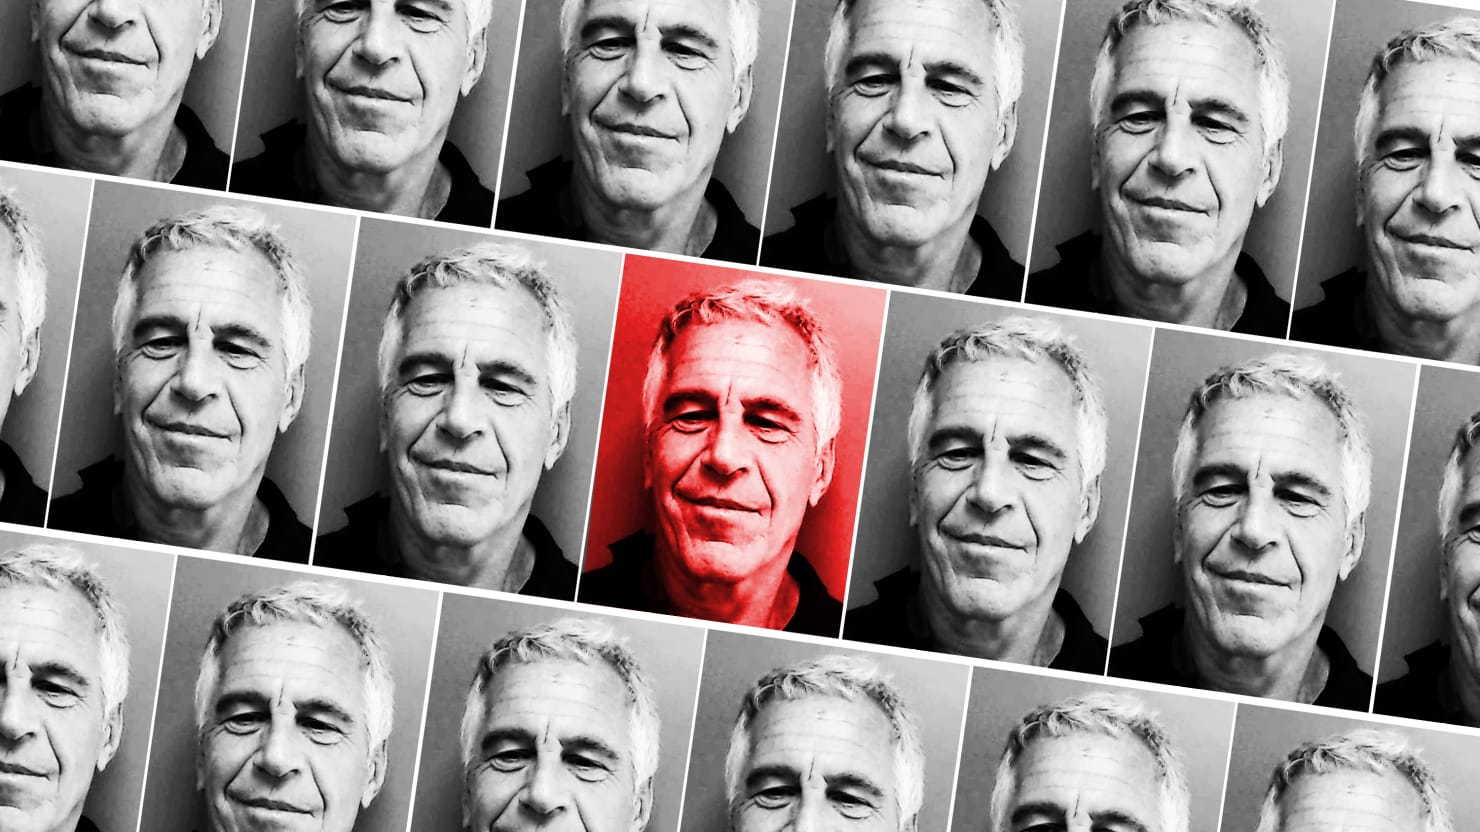 Everything You Need to Know About the Jeffrey Epstein Case